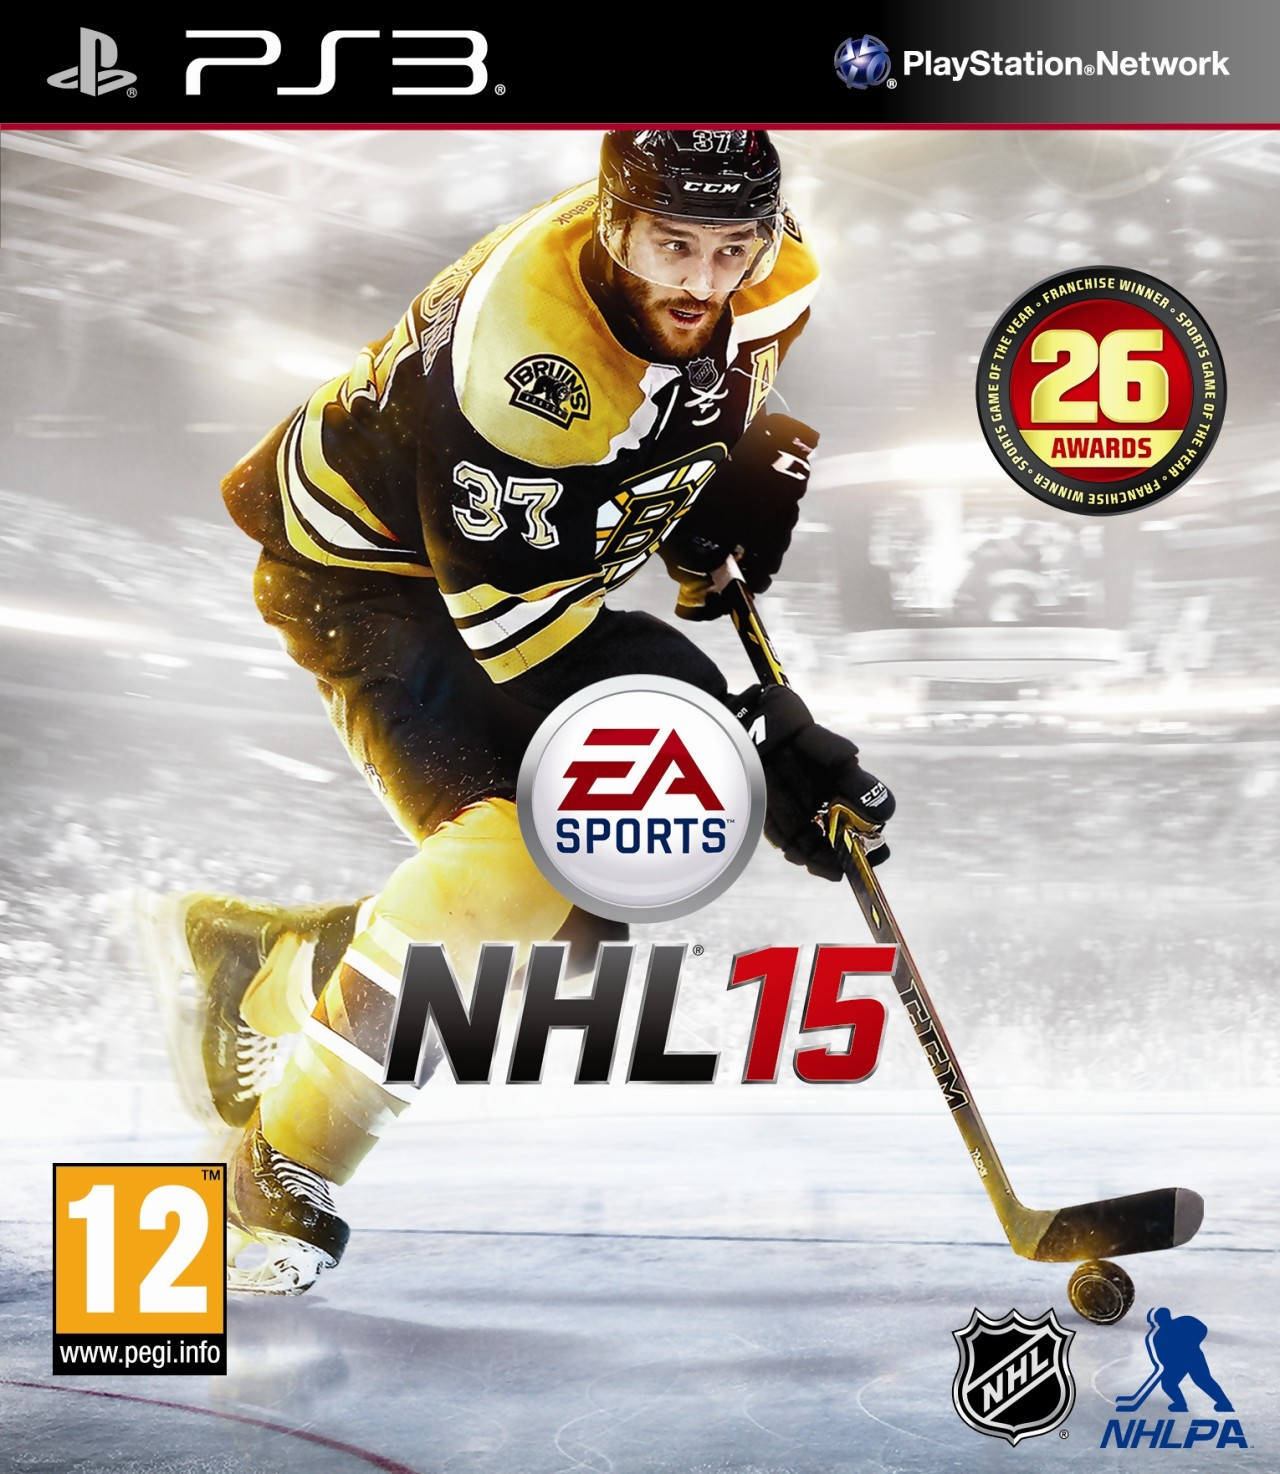 NHL 15 Video Game Release Dates Revealed - XboxOne-HQ.COM